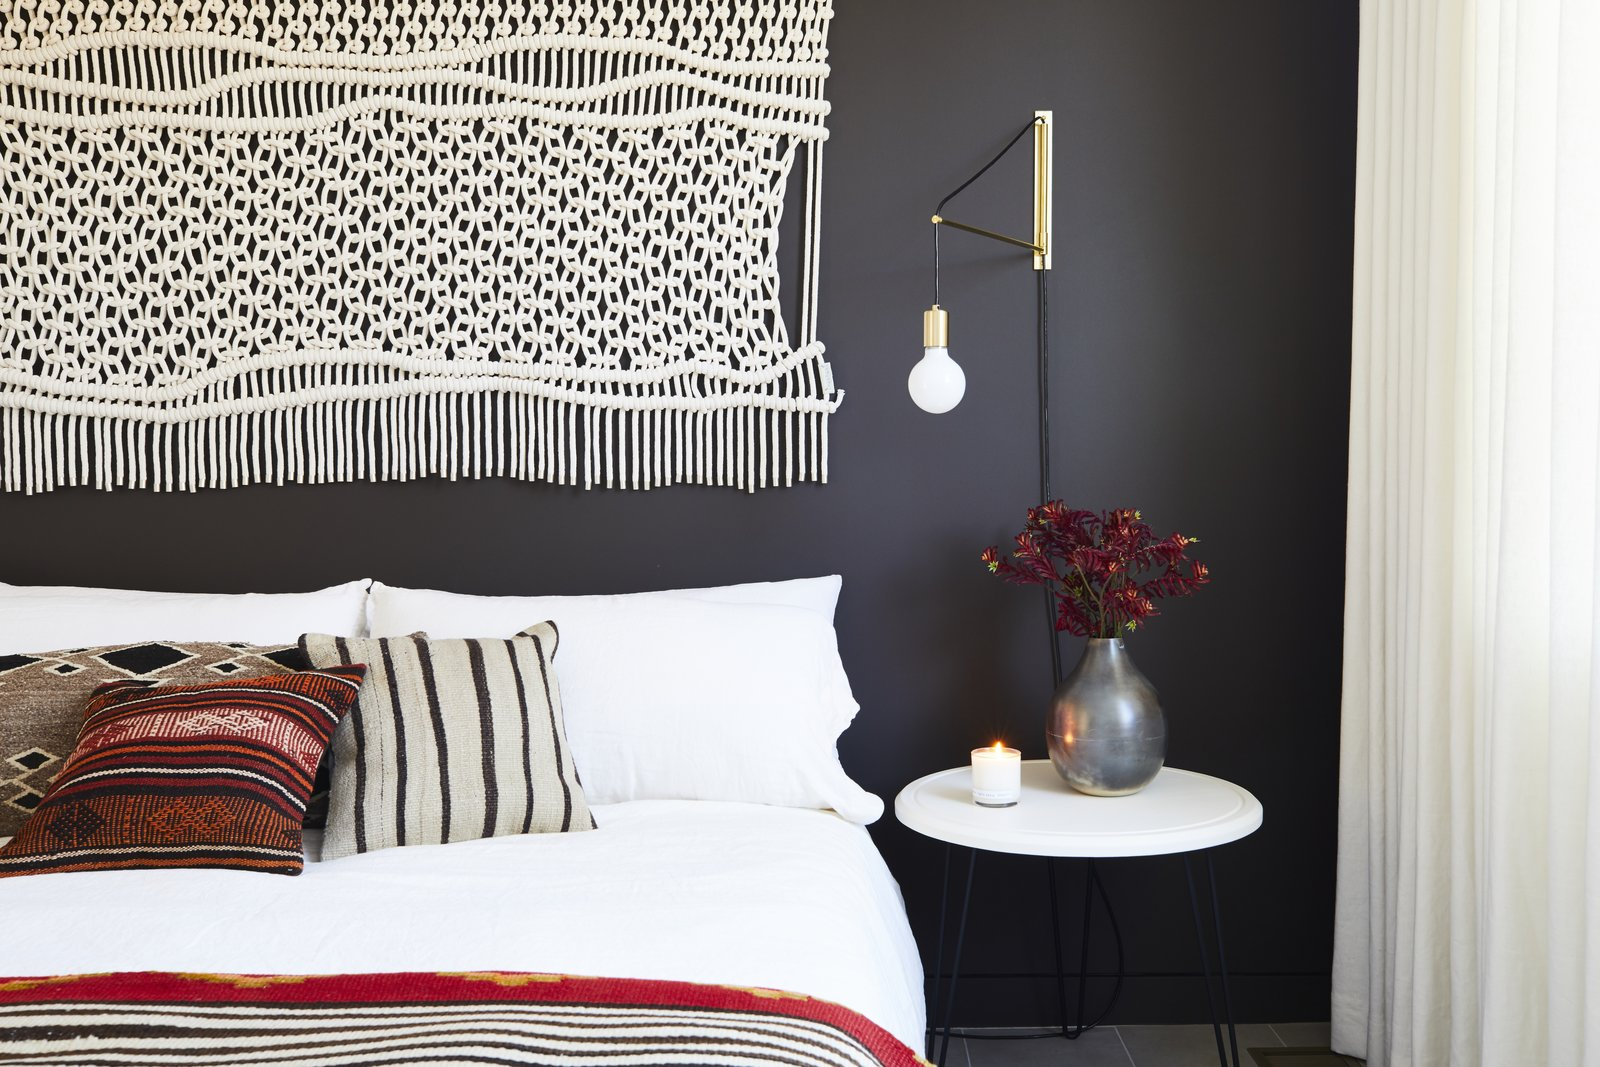 In the second bedroom, a macrame wall hanging and gold sconce were found at Etsy, which matches the sentiment of the DIY nightstand. Matteo bedding pops against the